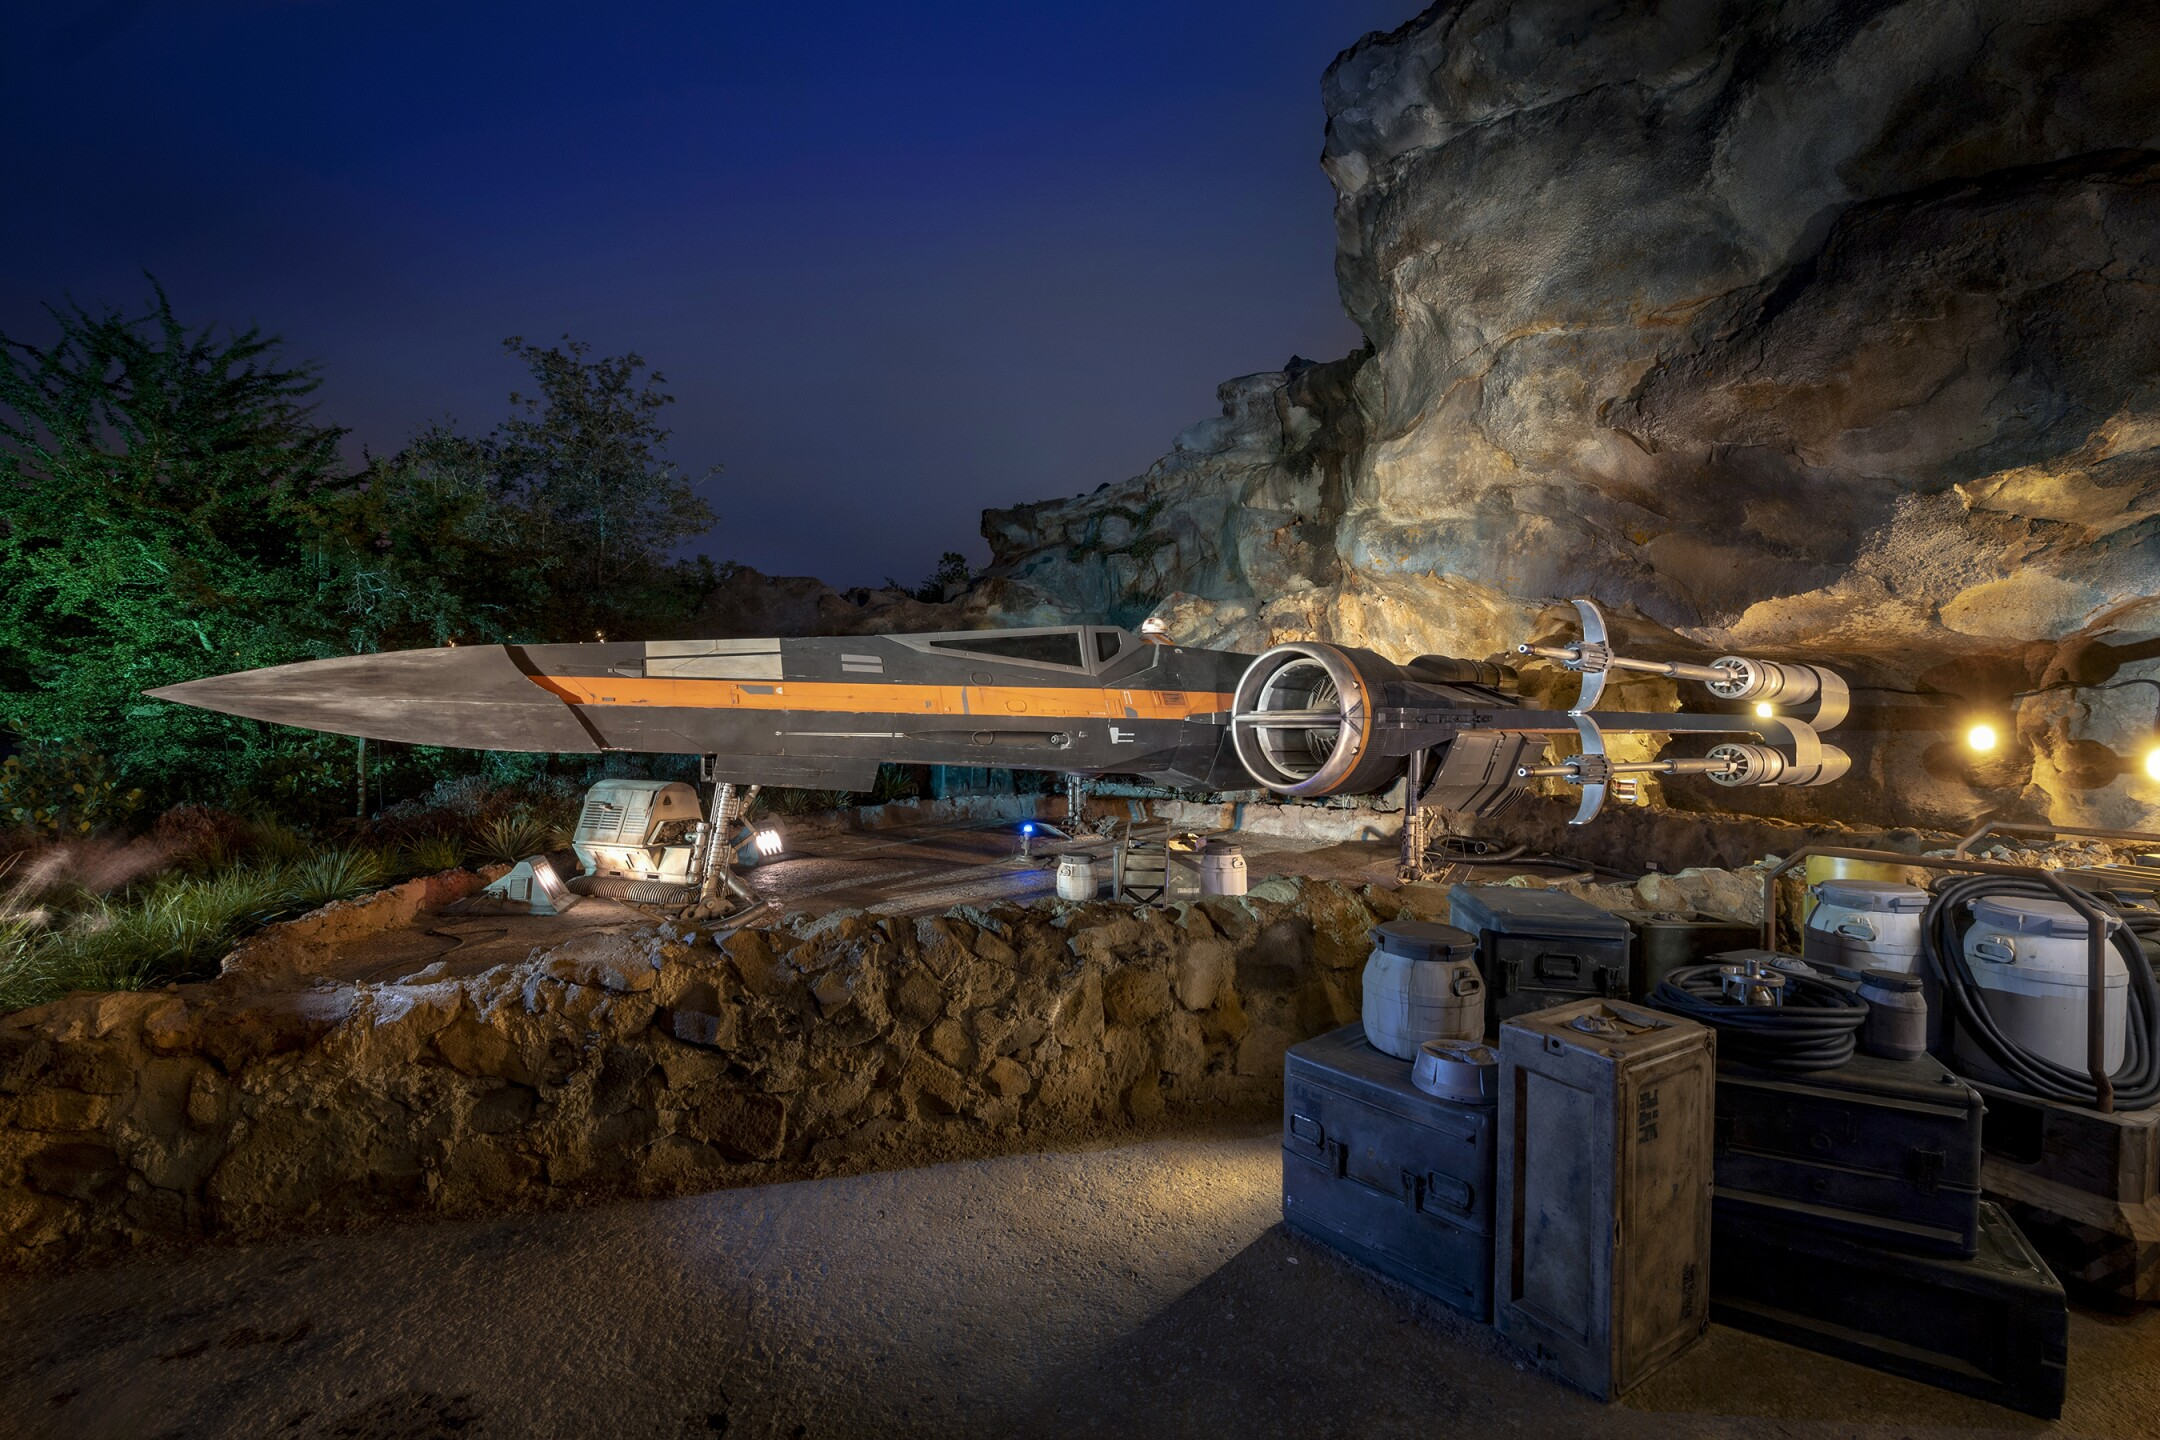 Poe Dameron's X-Wing Starfighter in Star Wars: Rise of the Resis